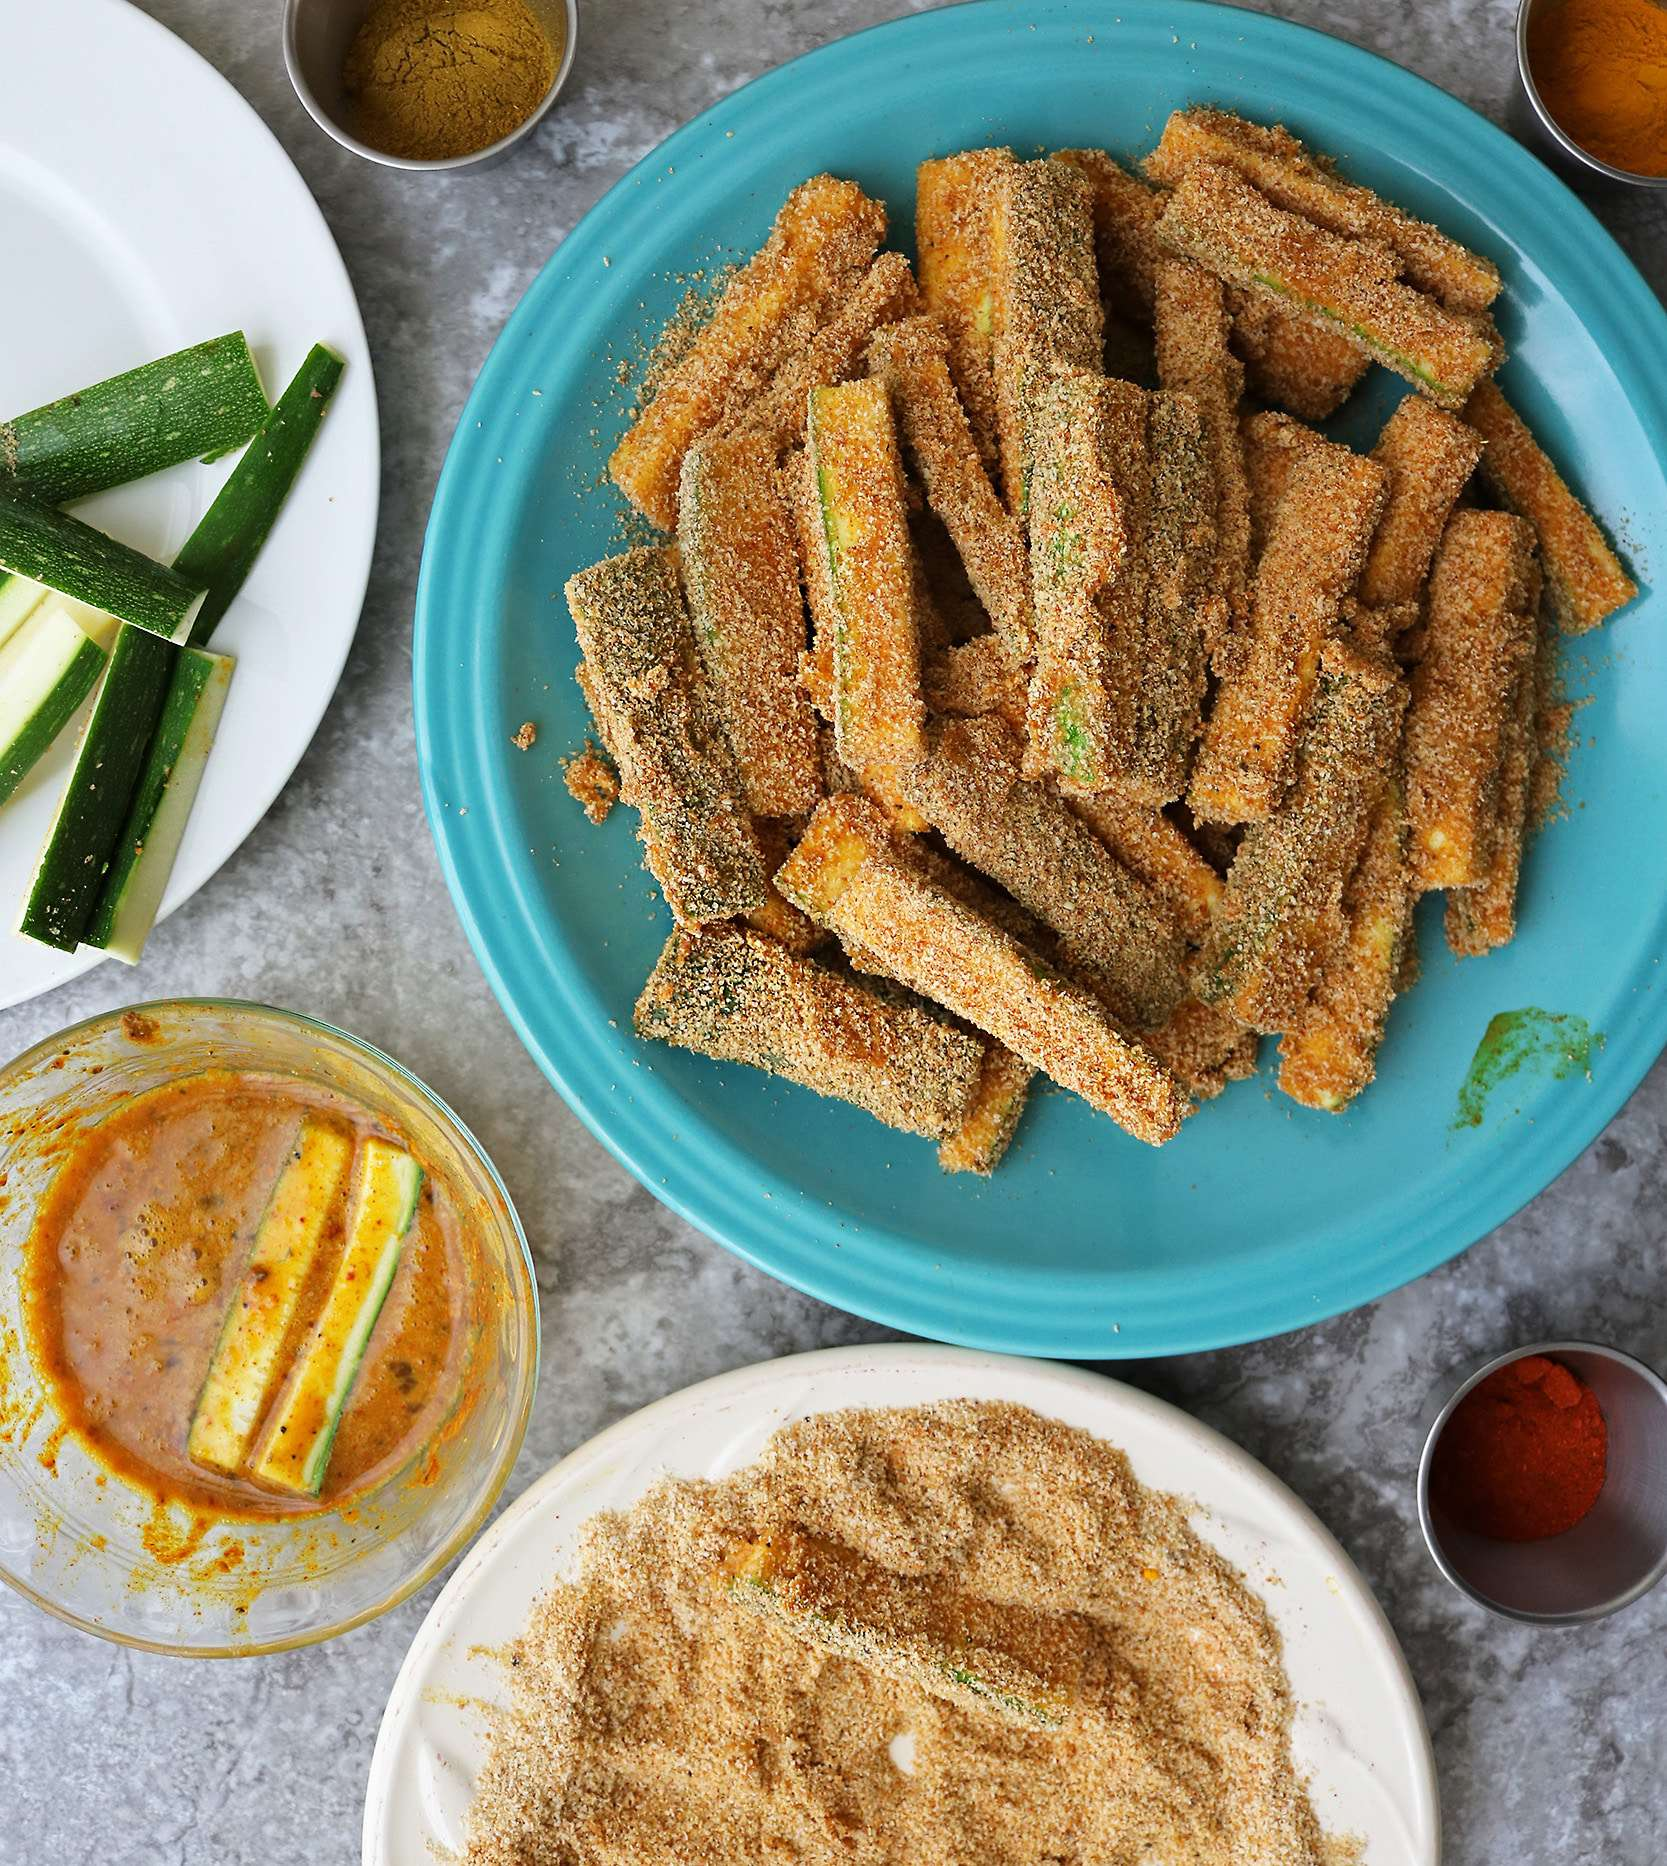 Making Air Fried Zucchini Fries Image